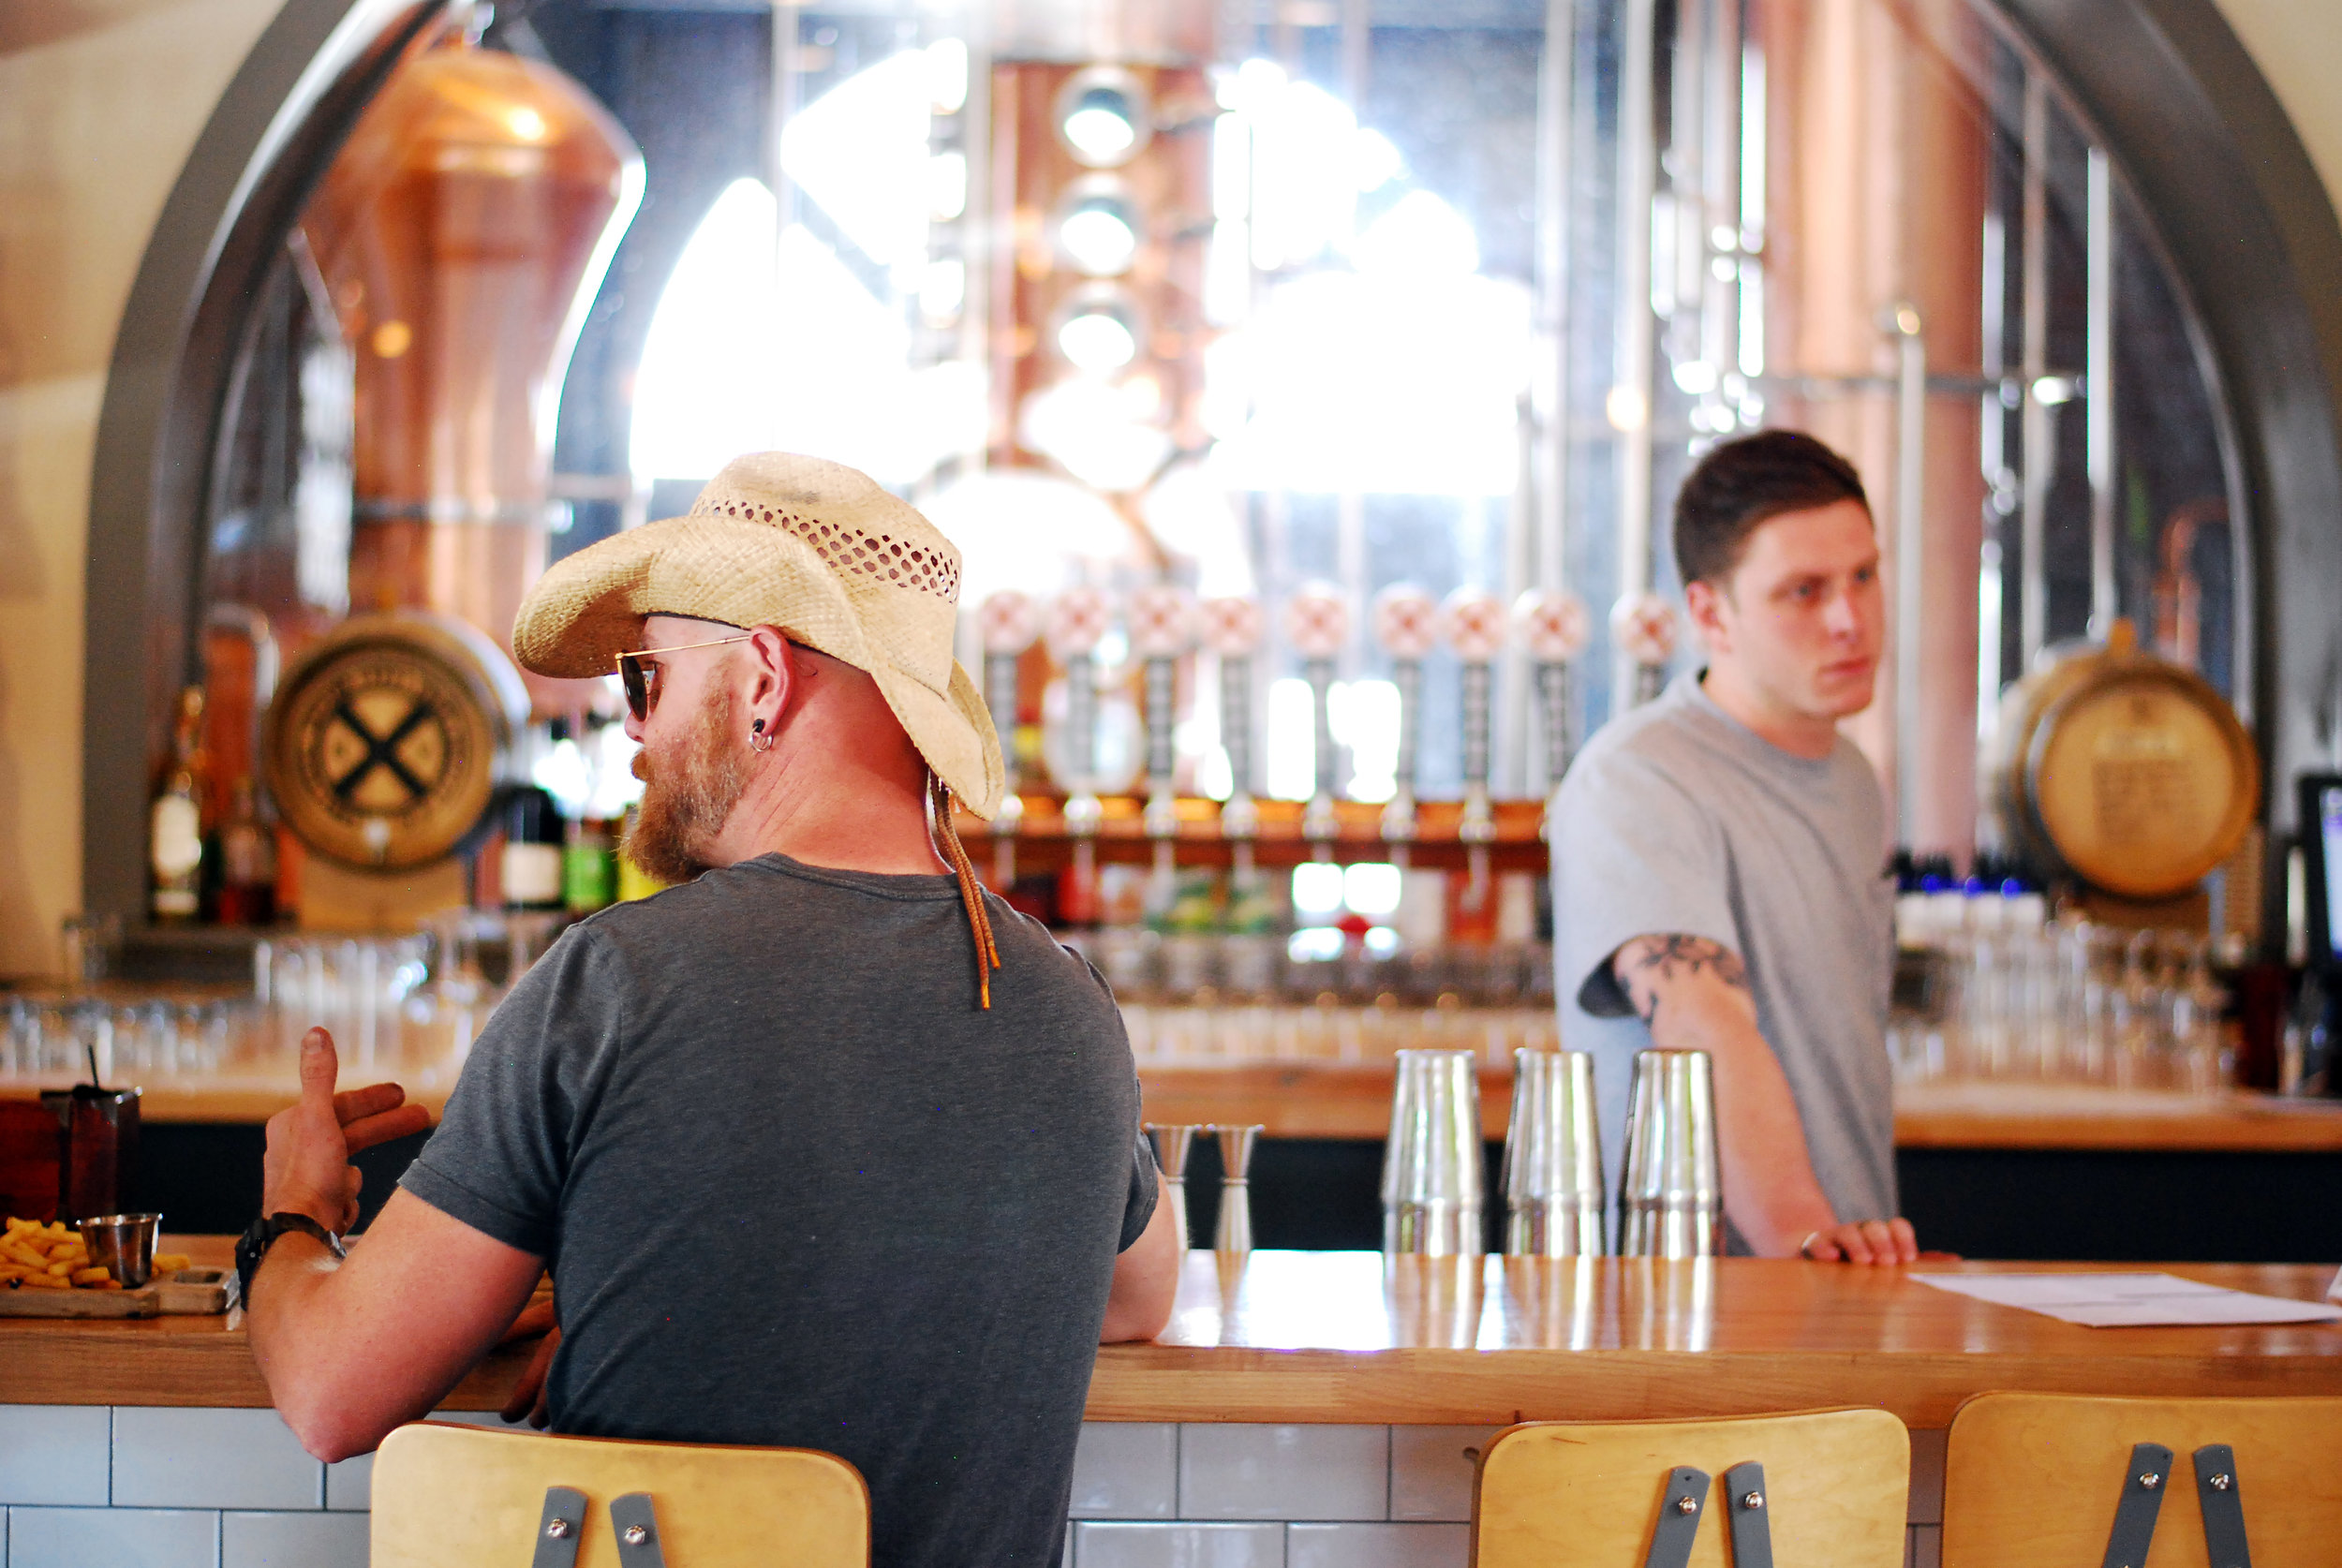 The Depot Craft Brewery and Distillery in Reno, Nevada